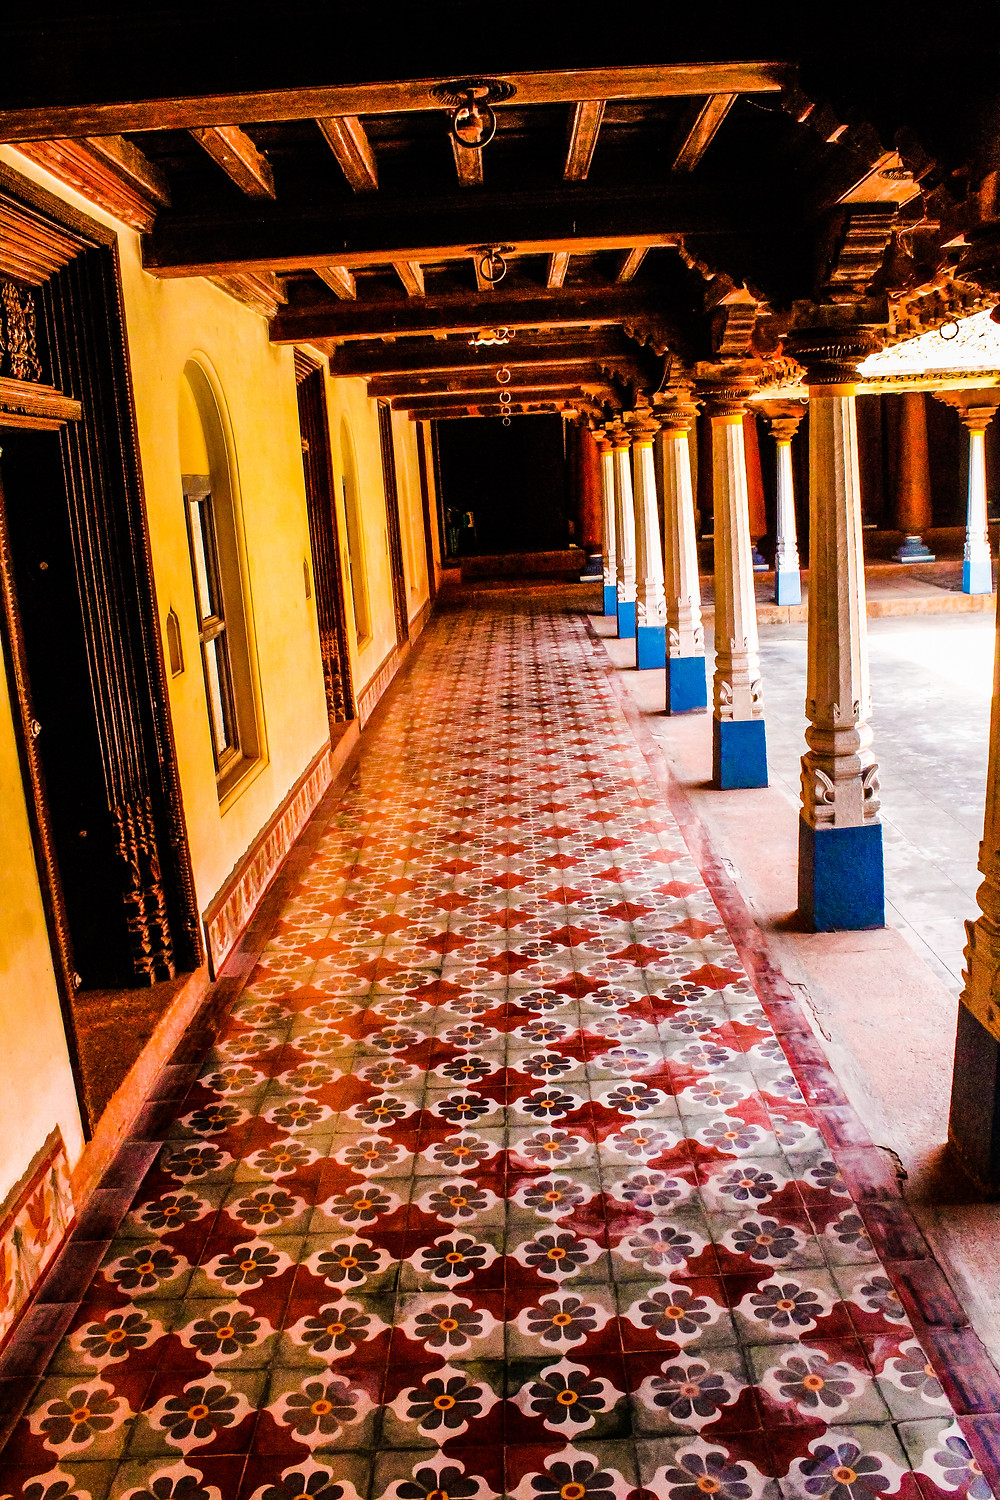 Chettinad, Chettinad architecture, things to do in Chettinad, Chettinad villages, Chettinad museum, Chettinad tours